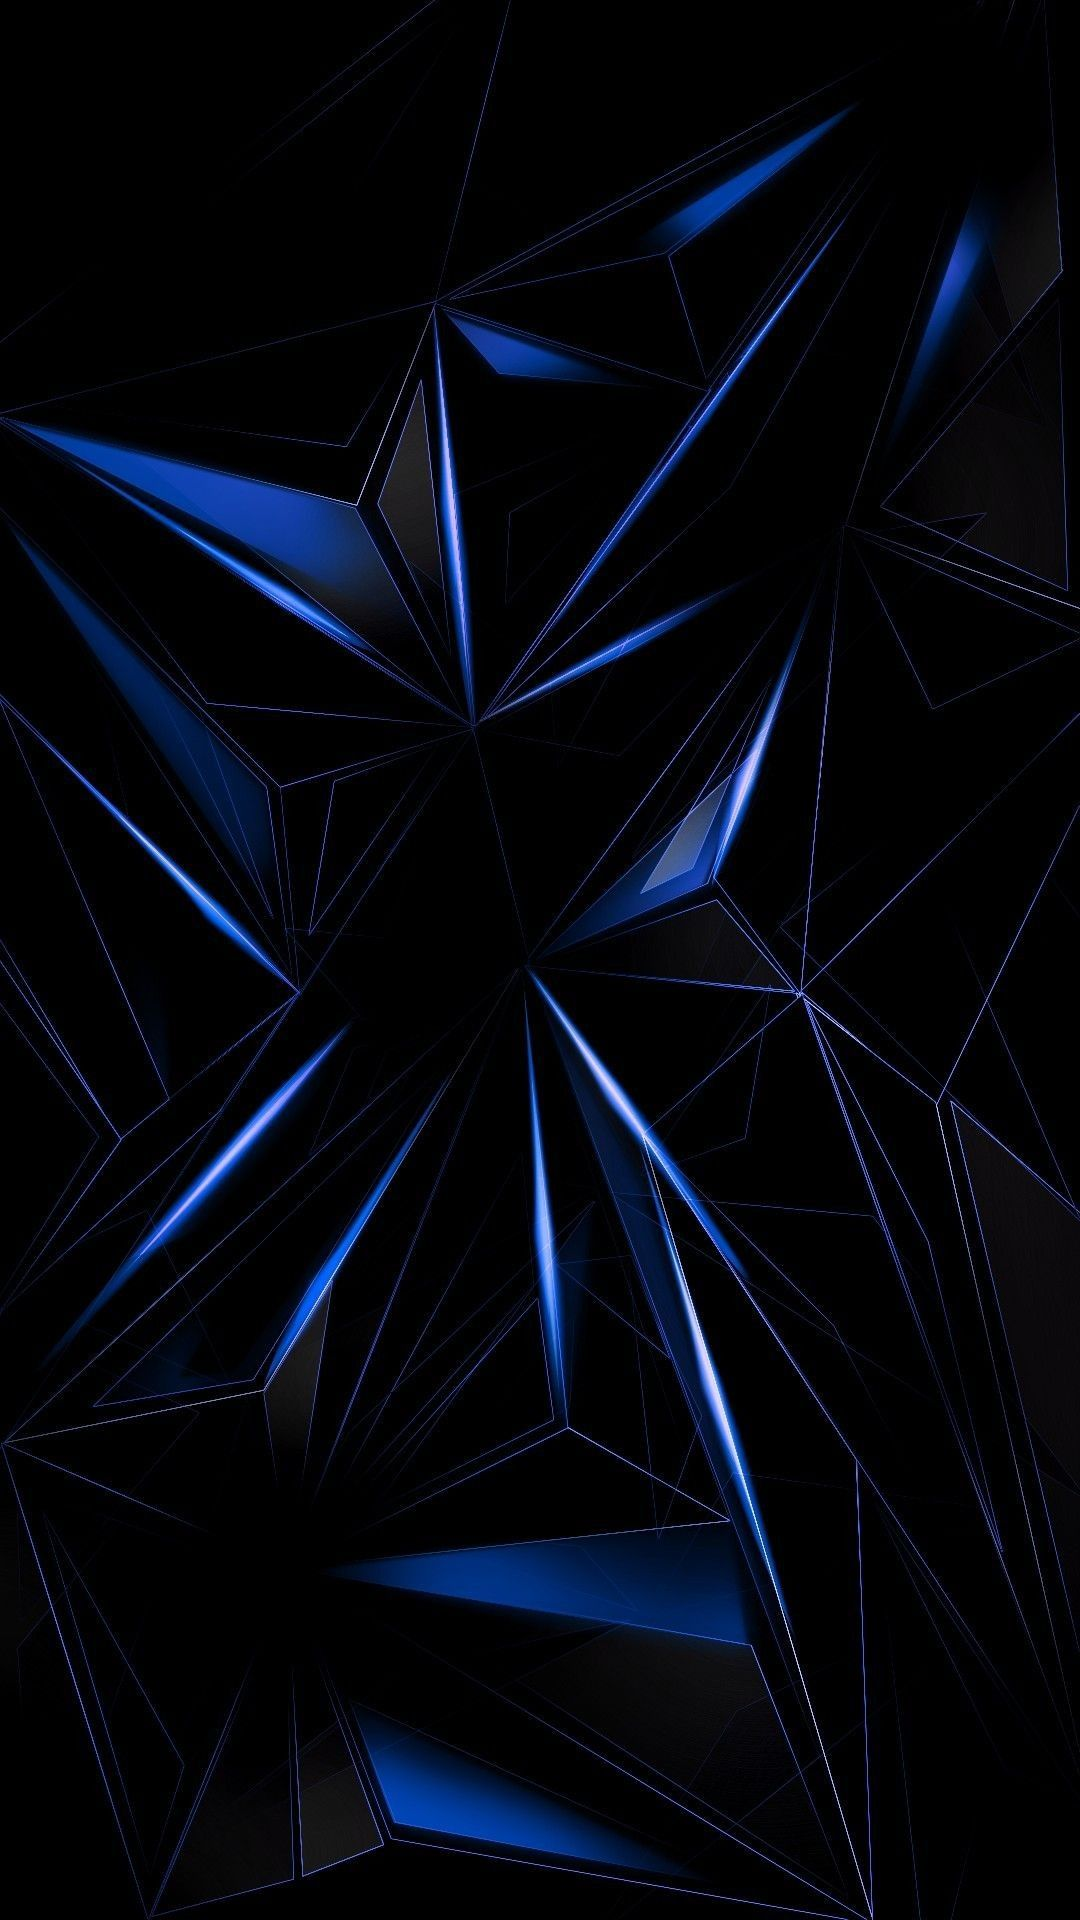 Geometric Navy And White Wallpaper Mobile Navy Wallpaper Abstract Wallpaper Backgrounds Android Wallpaper